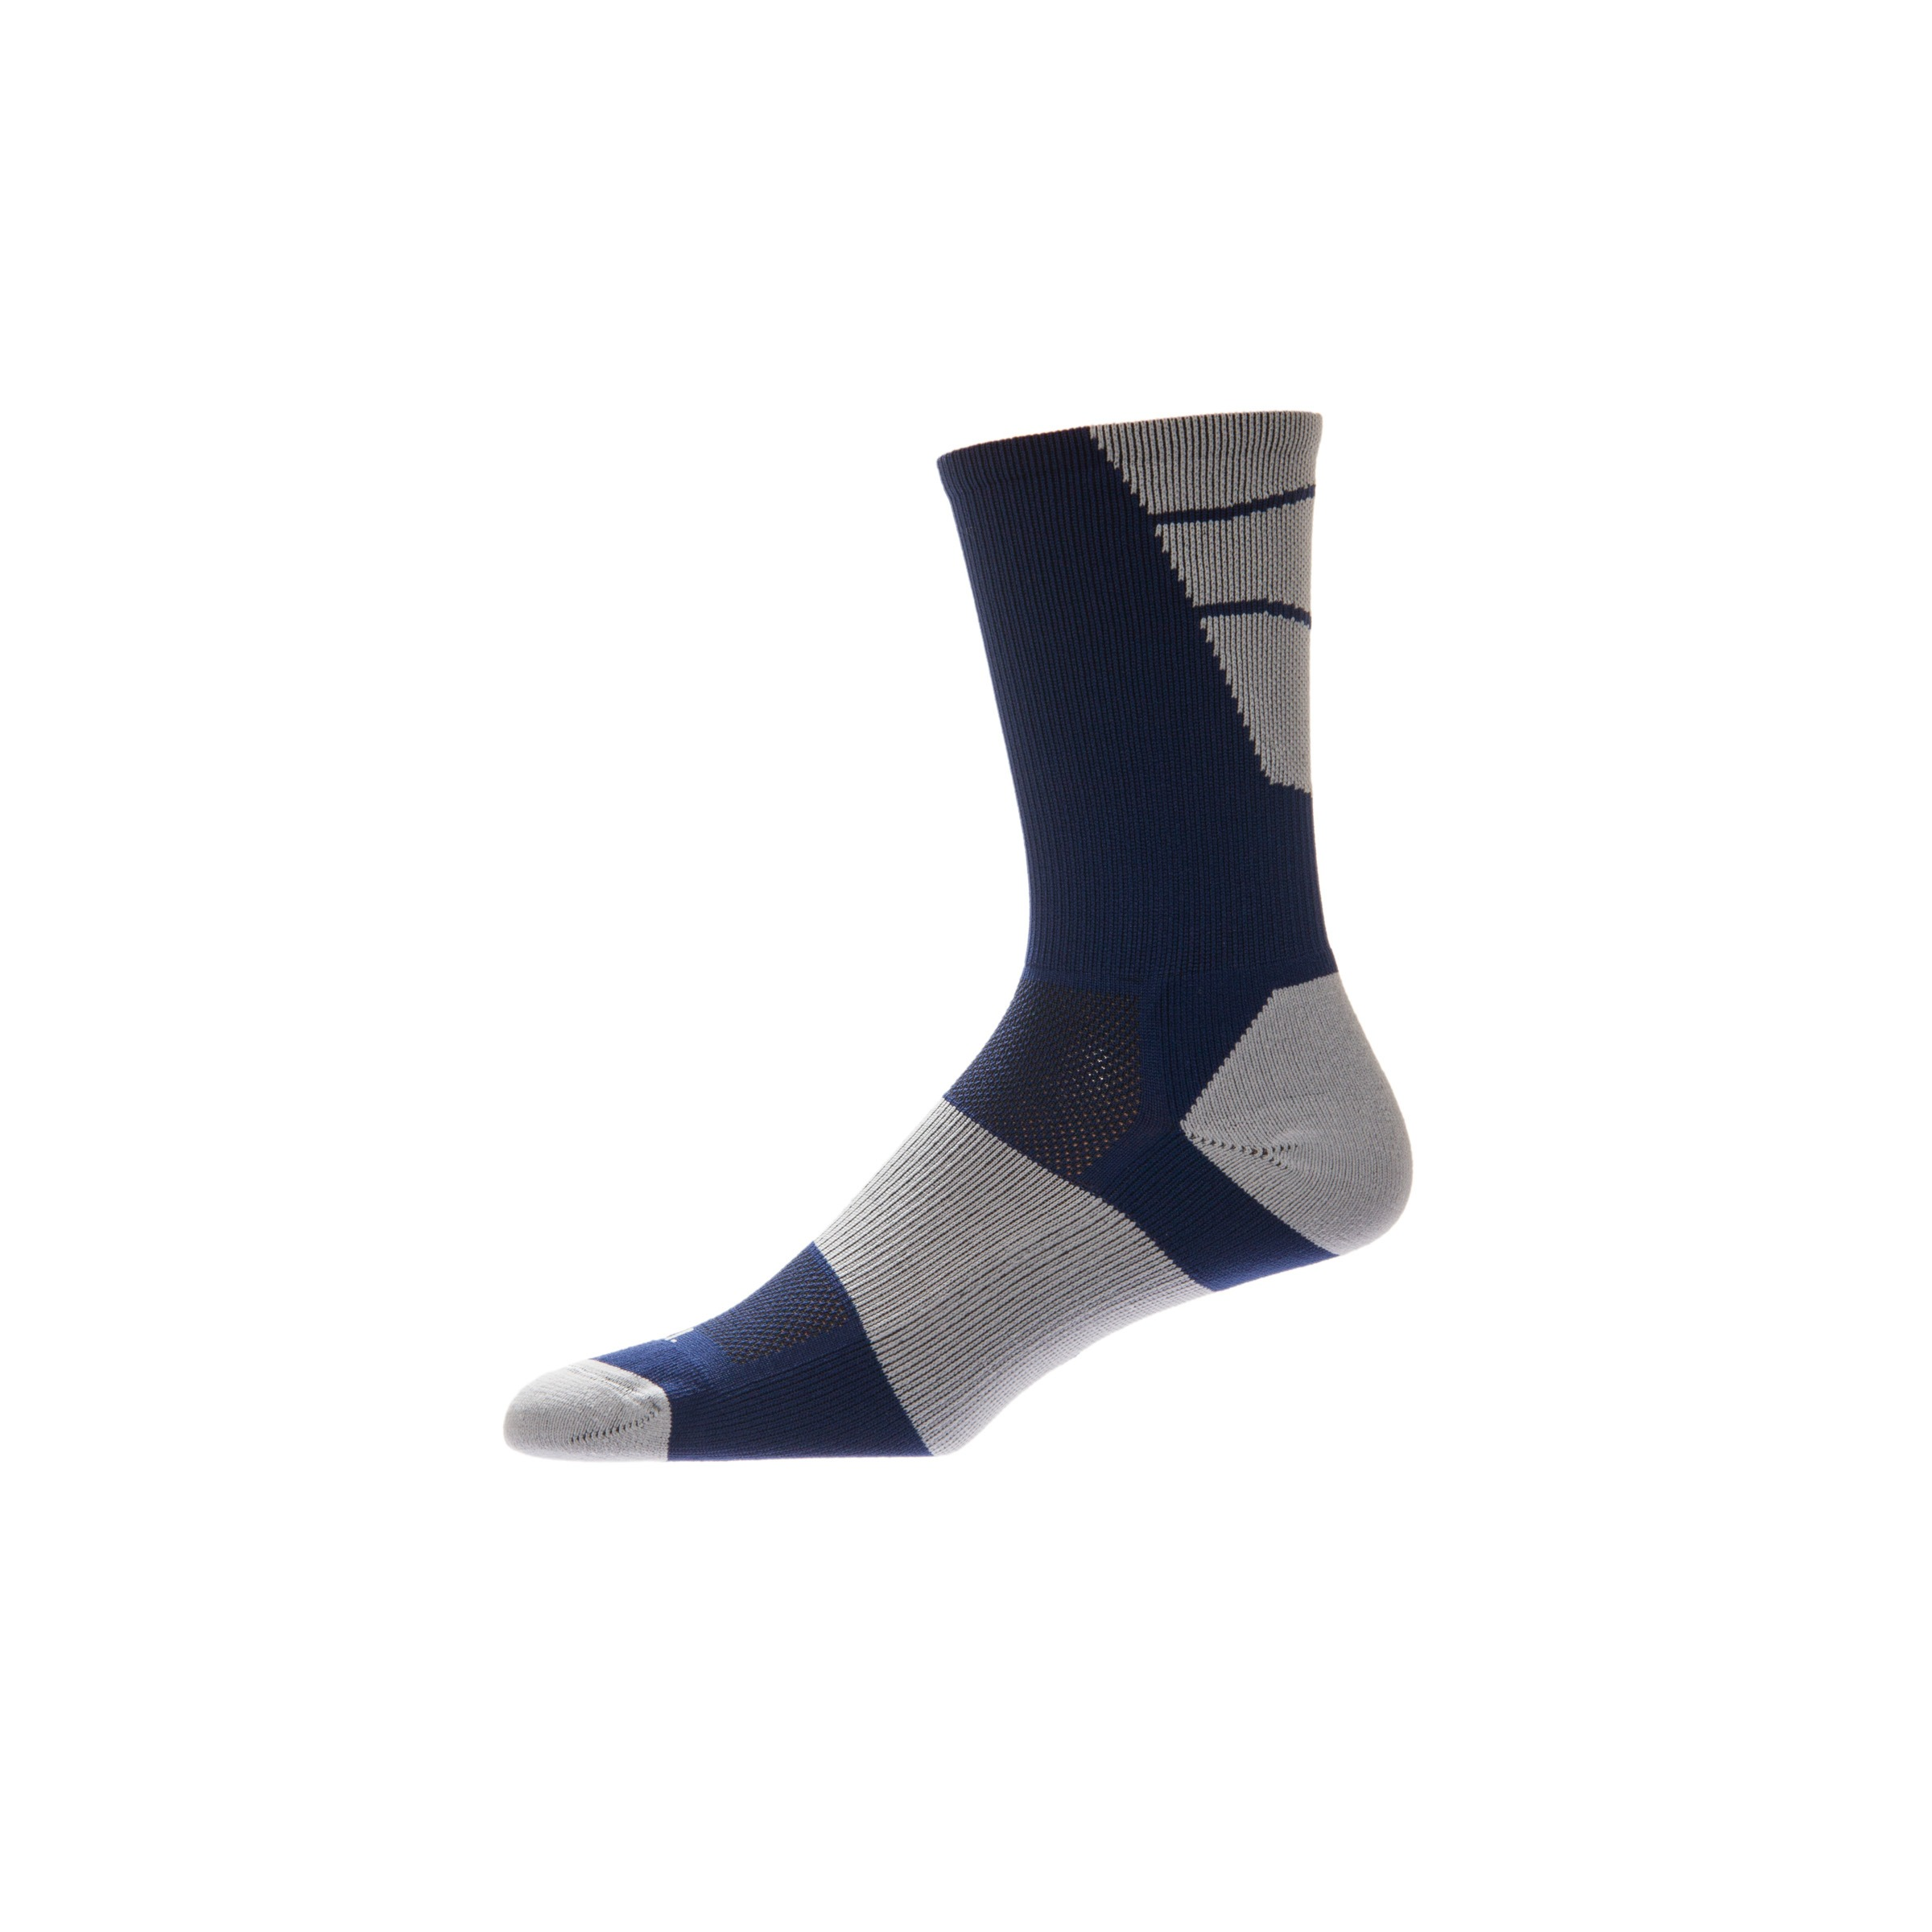 CSI Point Guard Performance Crew Socks Made In The USA